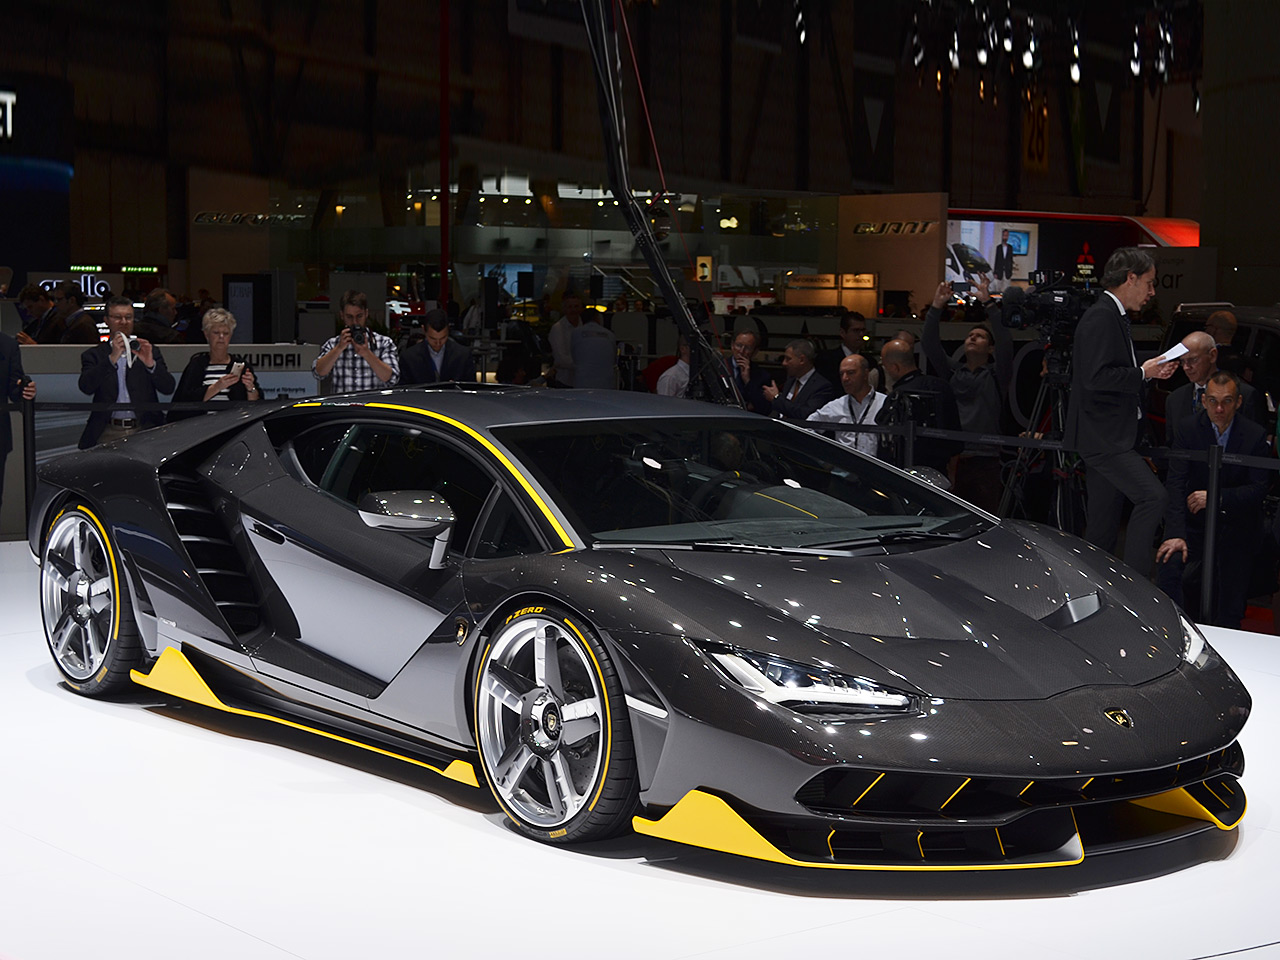 lamborghini centenario 2016 marktstart preis. Black Bedroom Furniture Sets. Home Design Ideas